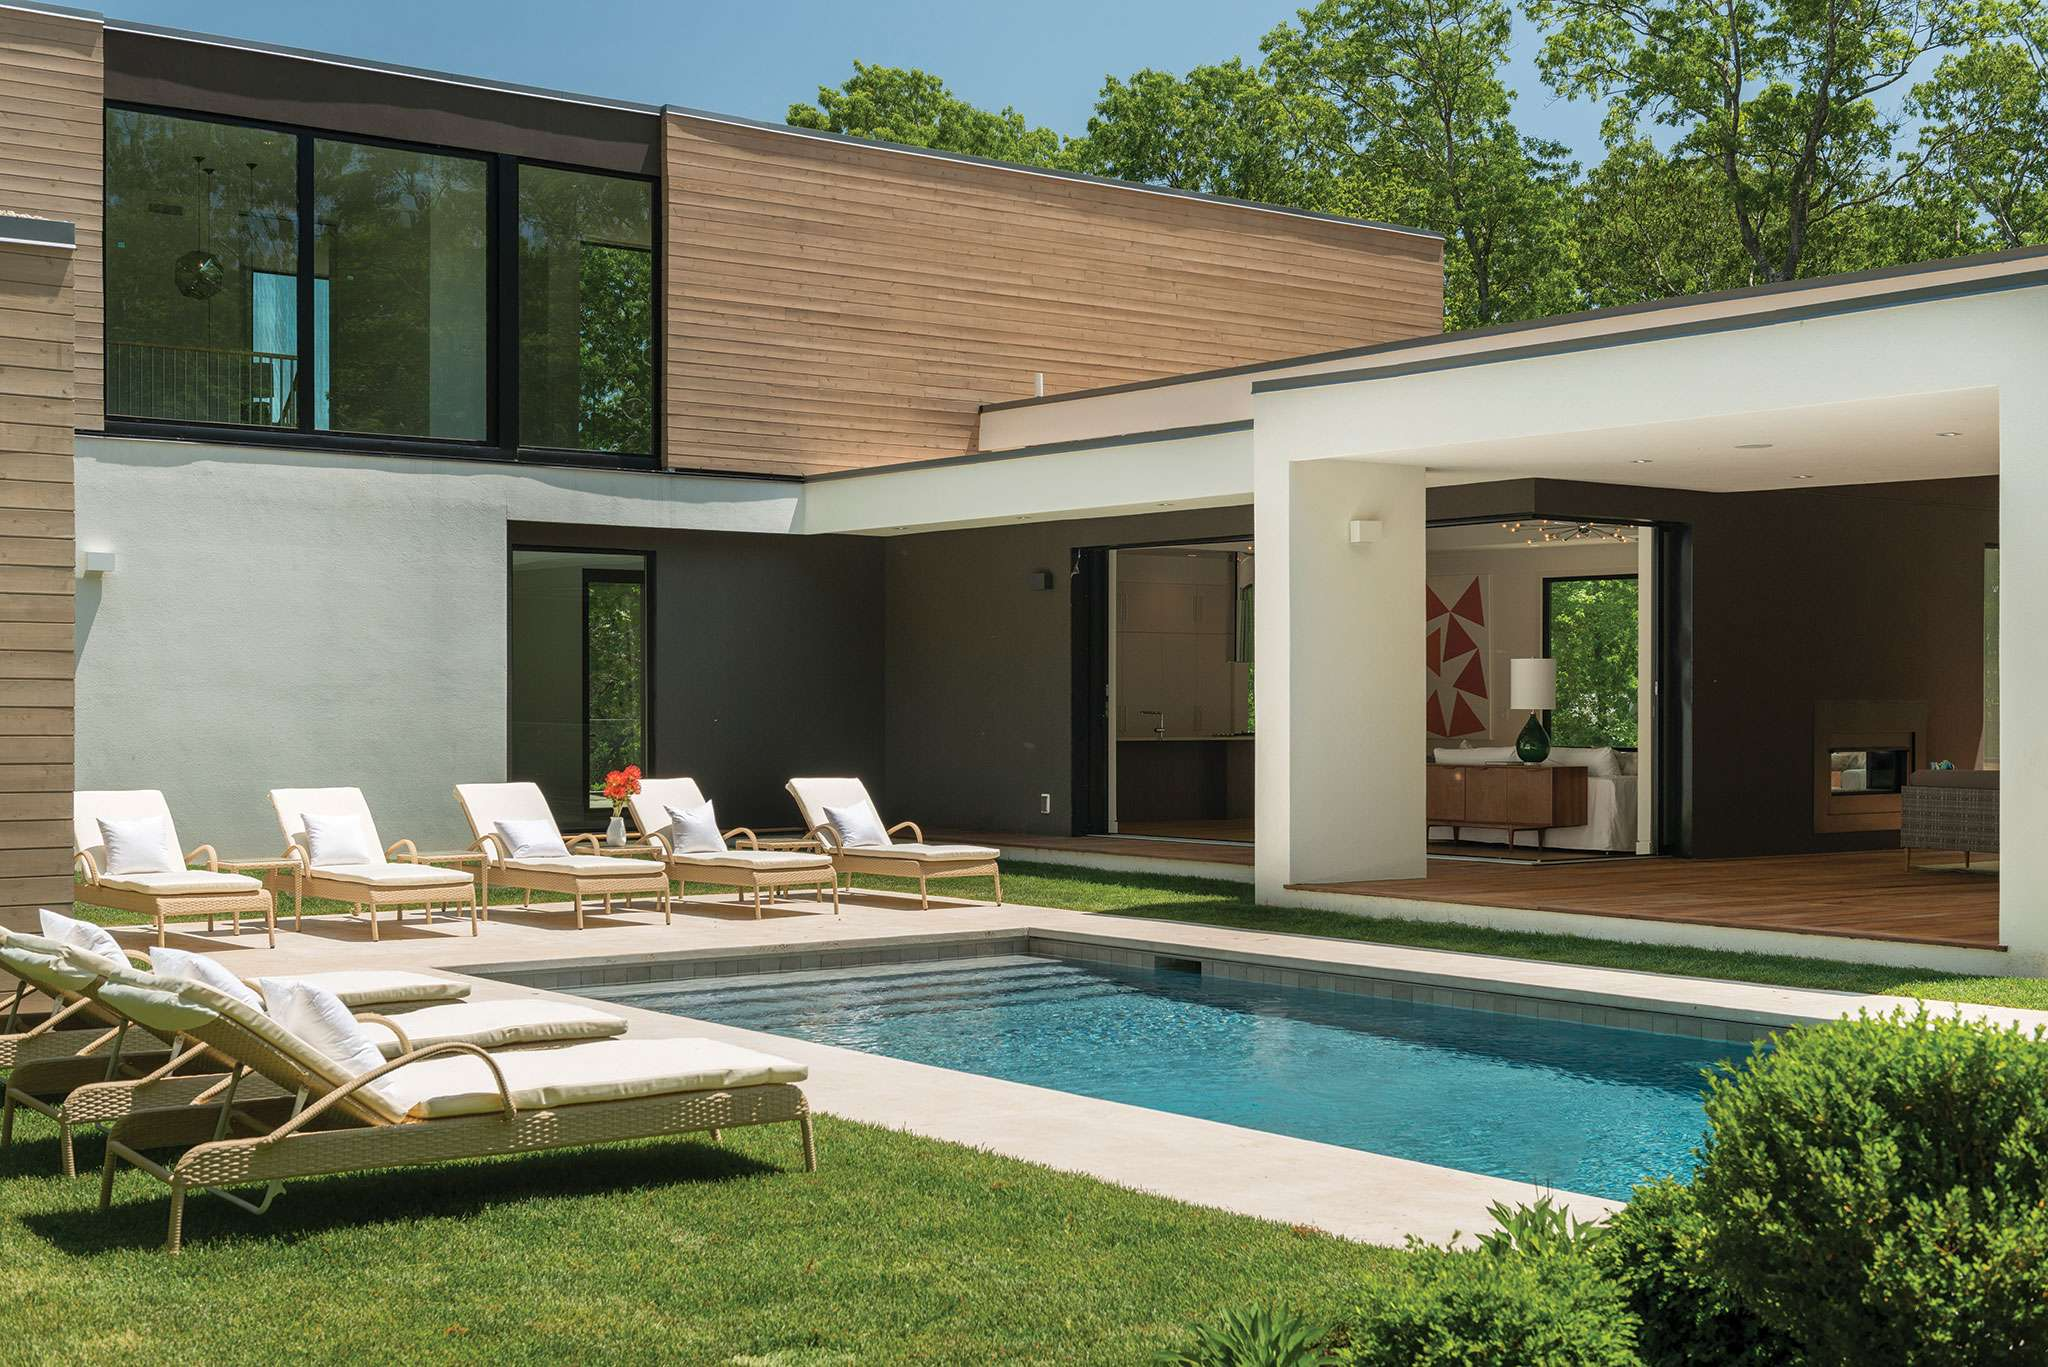 Single Family Home for Sale at New Construction Modern In Bridgehampton 2138 Scuttle Hole Road, Bridgehampton, New York